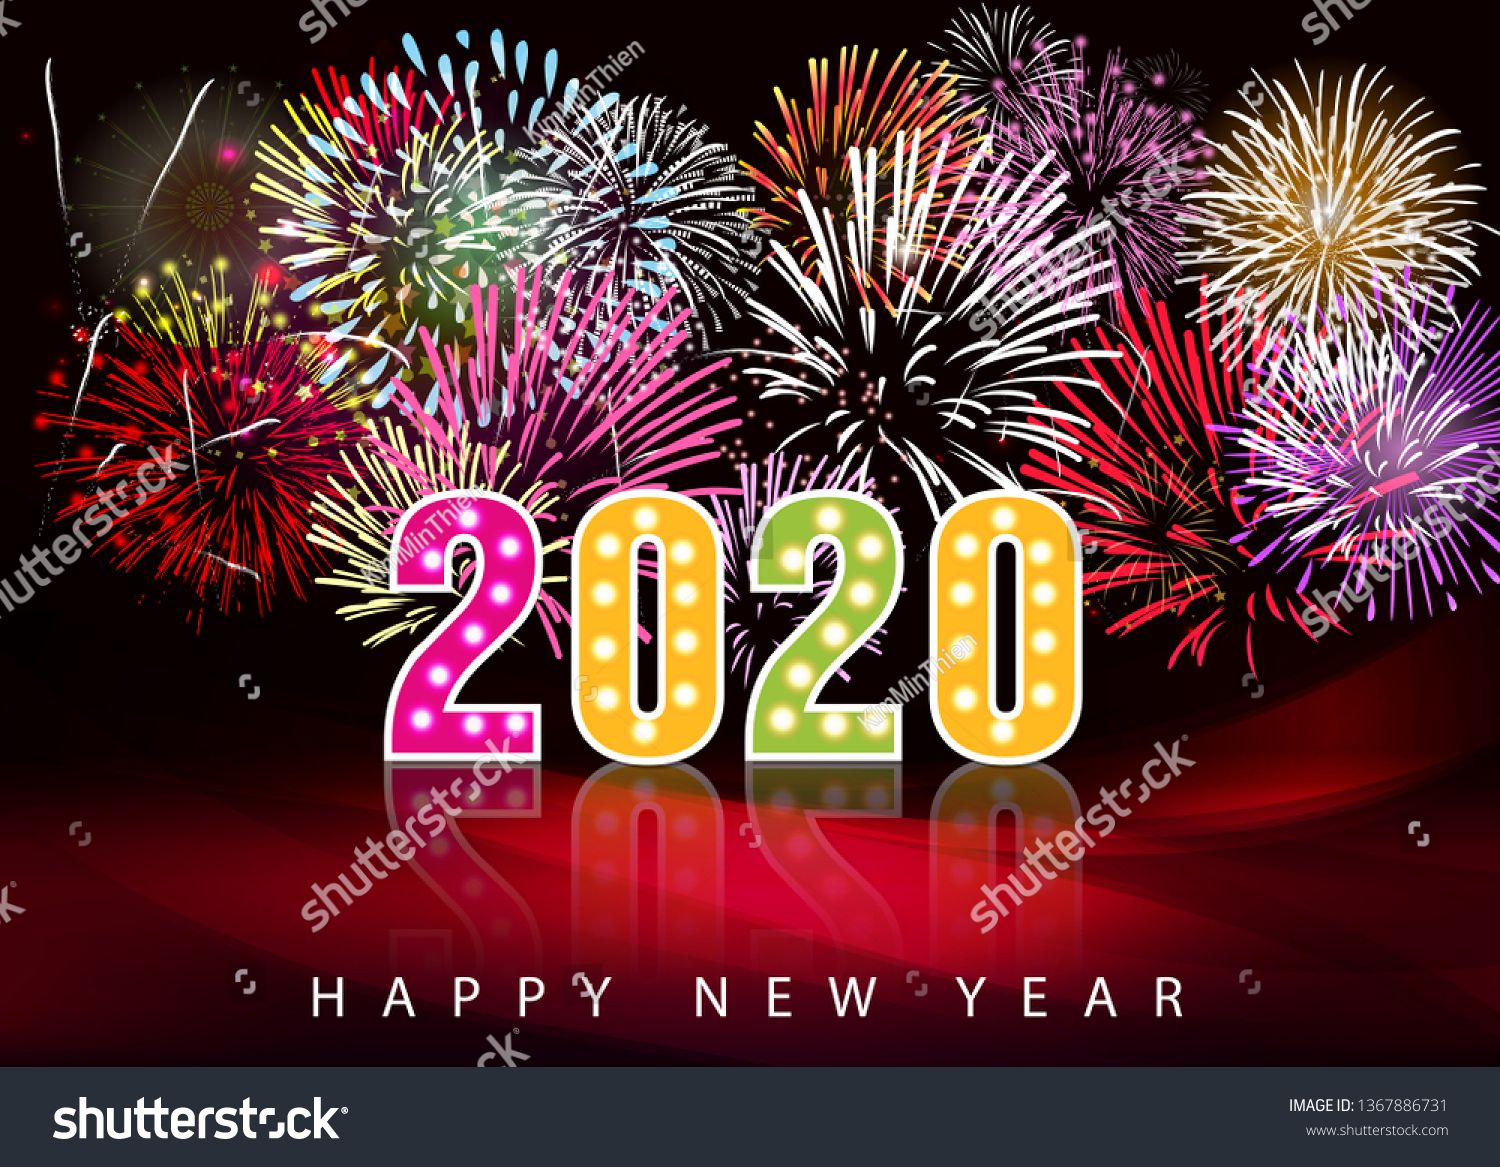 Happy New Year 2020 Year Of The Rat Ad Affiliate Year Happy Rat Year Happy New Year Images Happy New Year Wishes Happy New Year Pictures